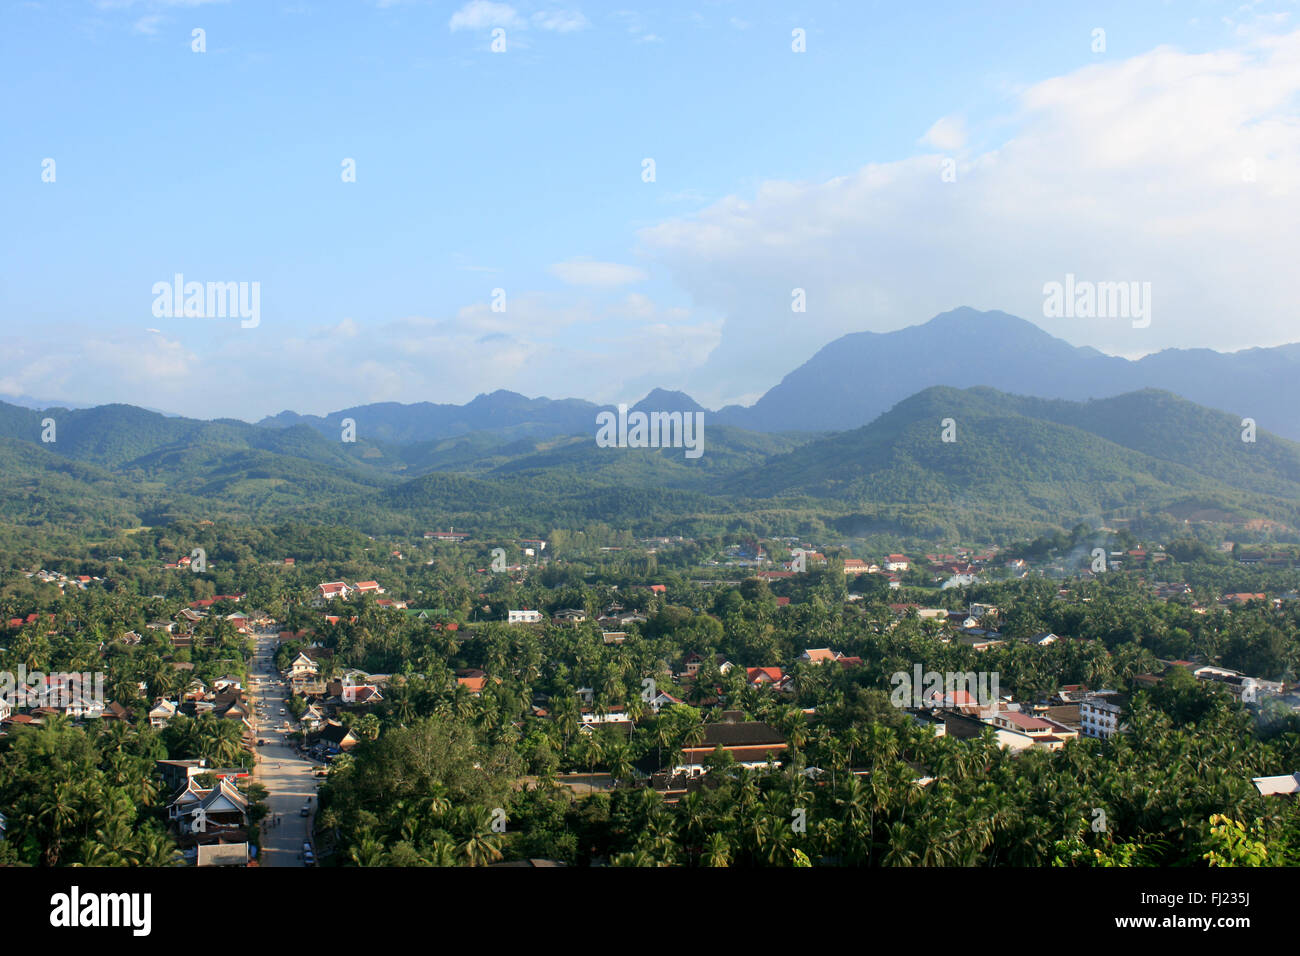 View on Luang Prabang city, Laos (landscape architecture and nature) - Stock Image